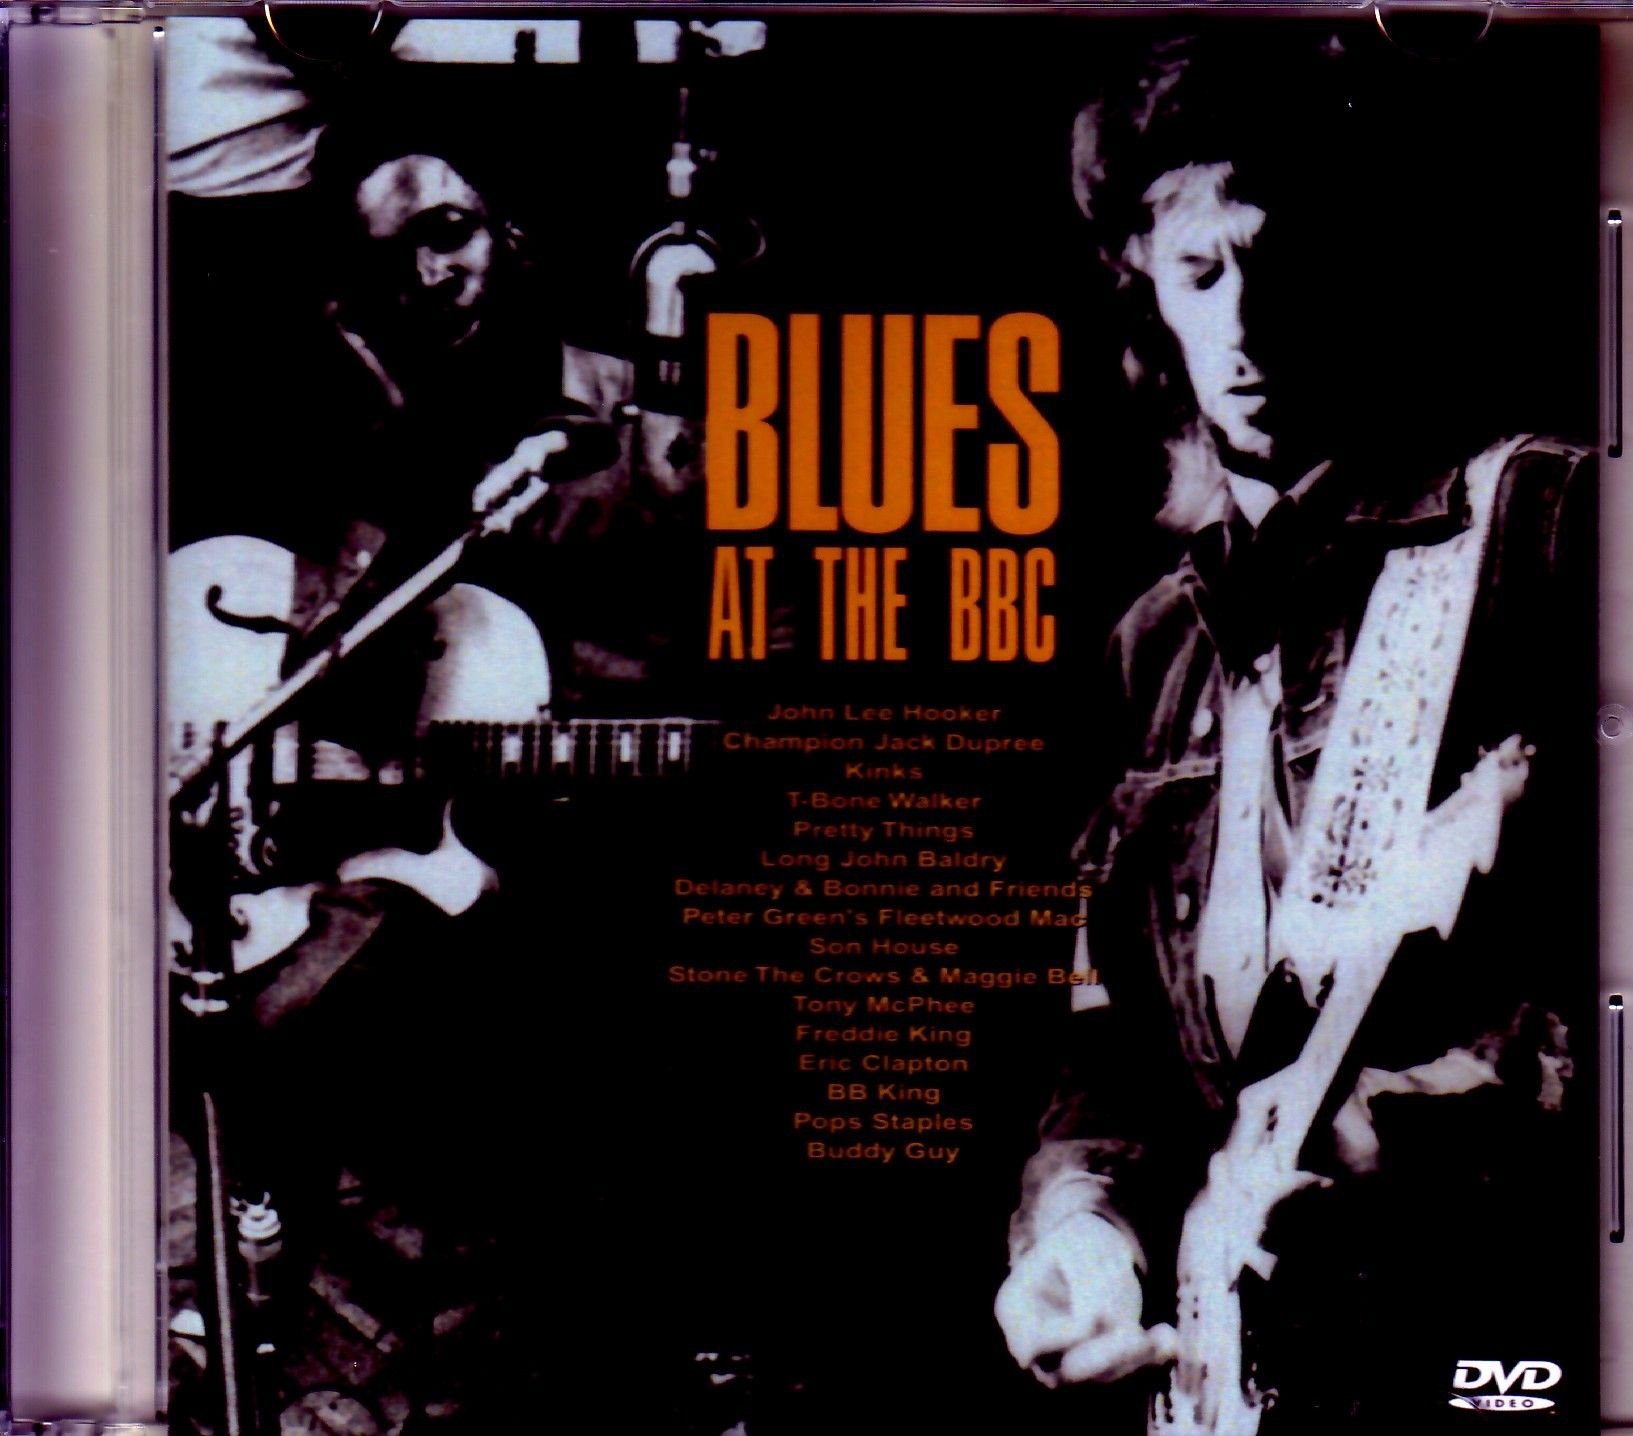 Various Artists BB King,Fleetwood Mac,Eric Clapton,Kinks/Live Compilation from 1964-1992